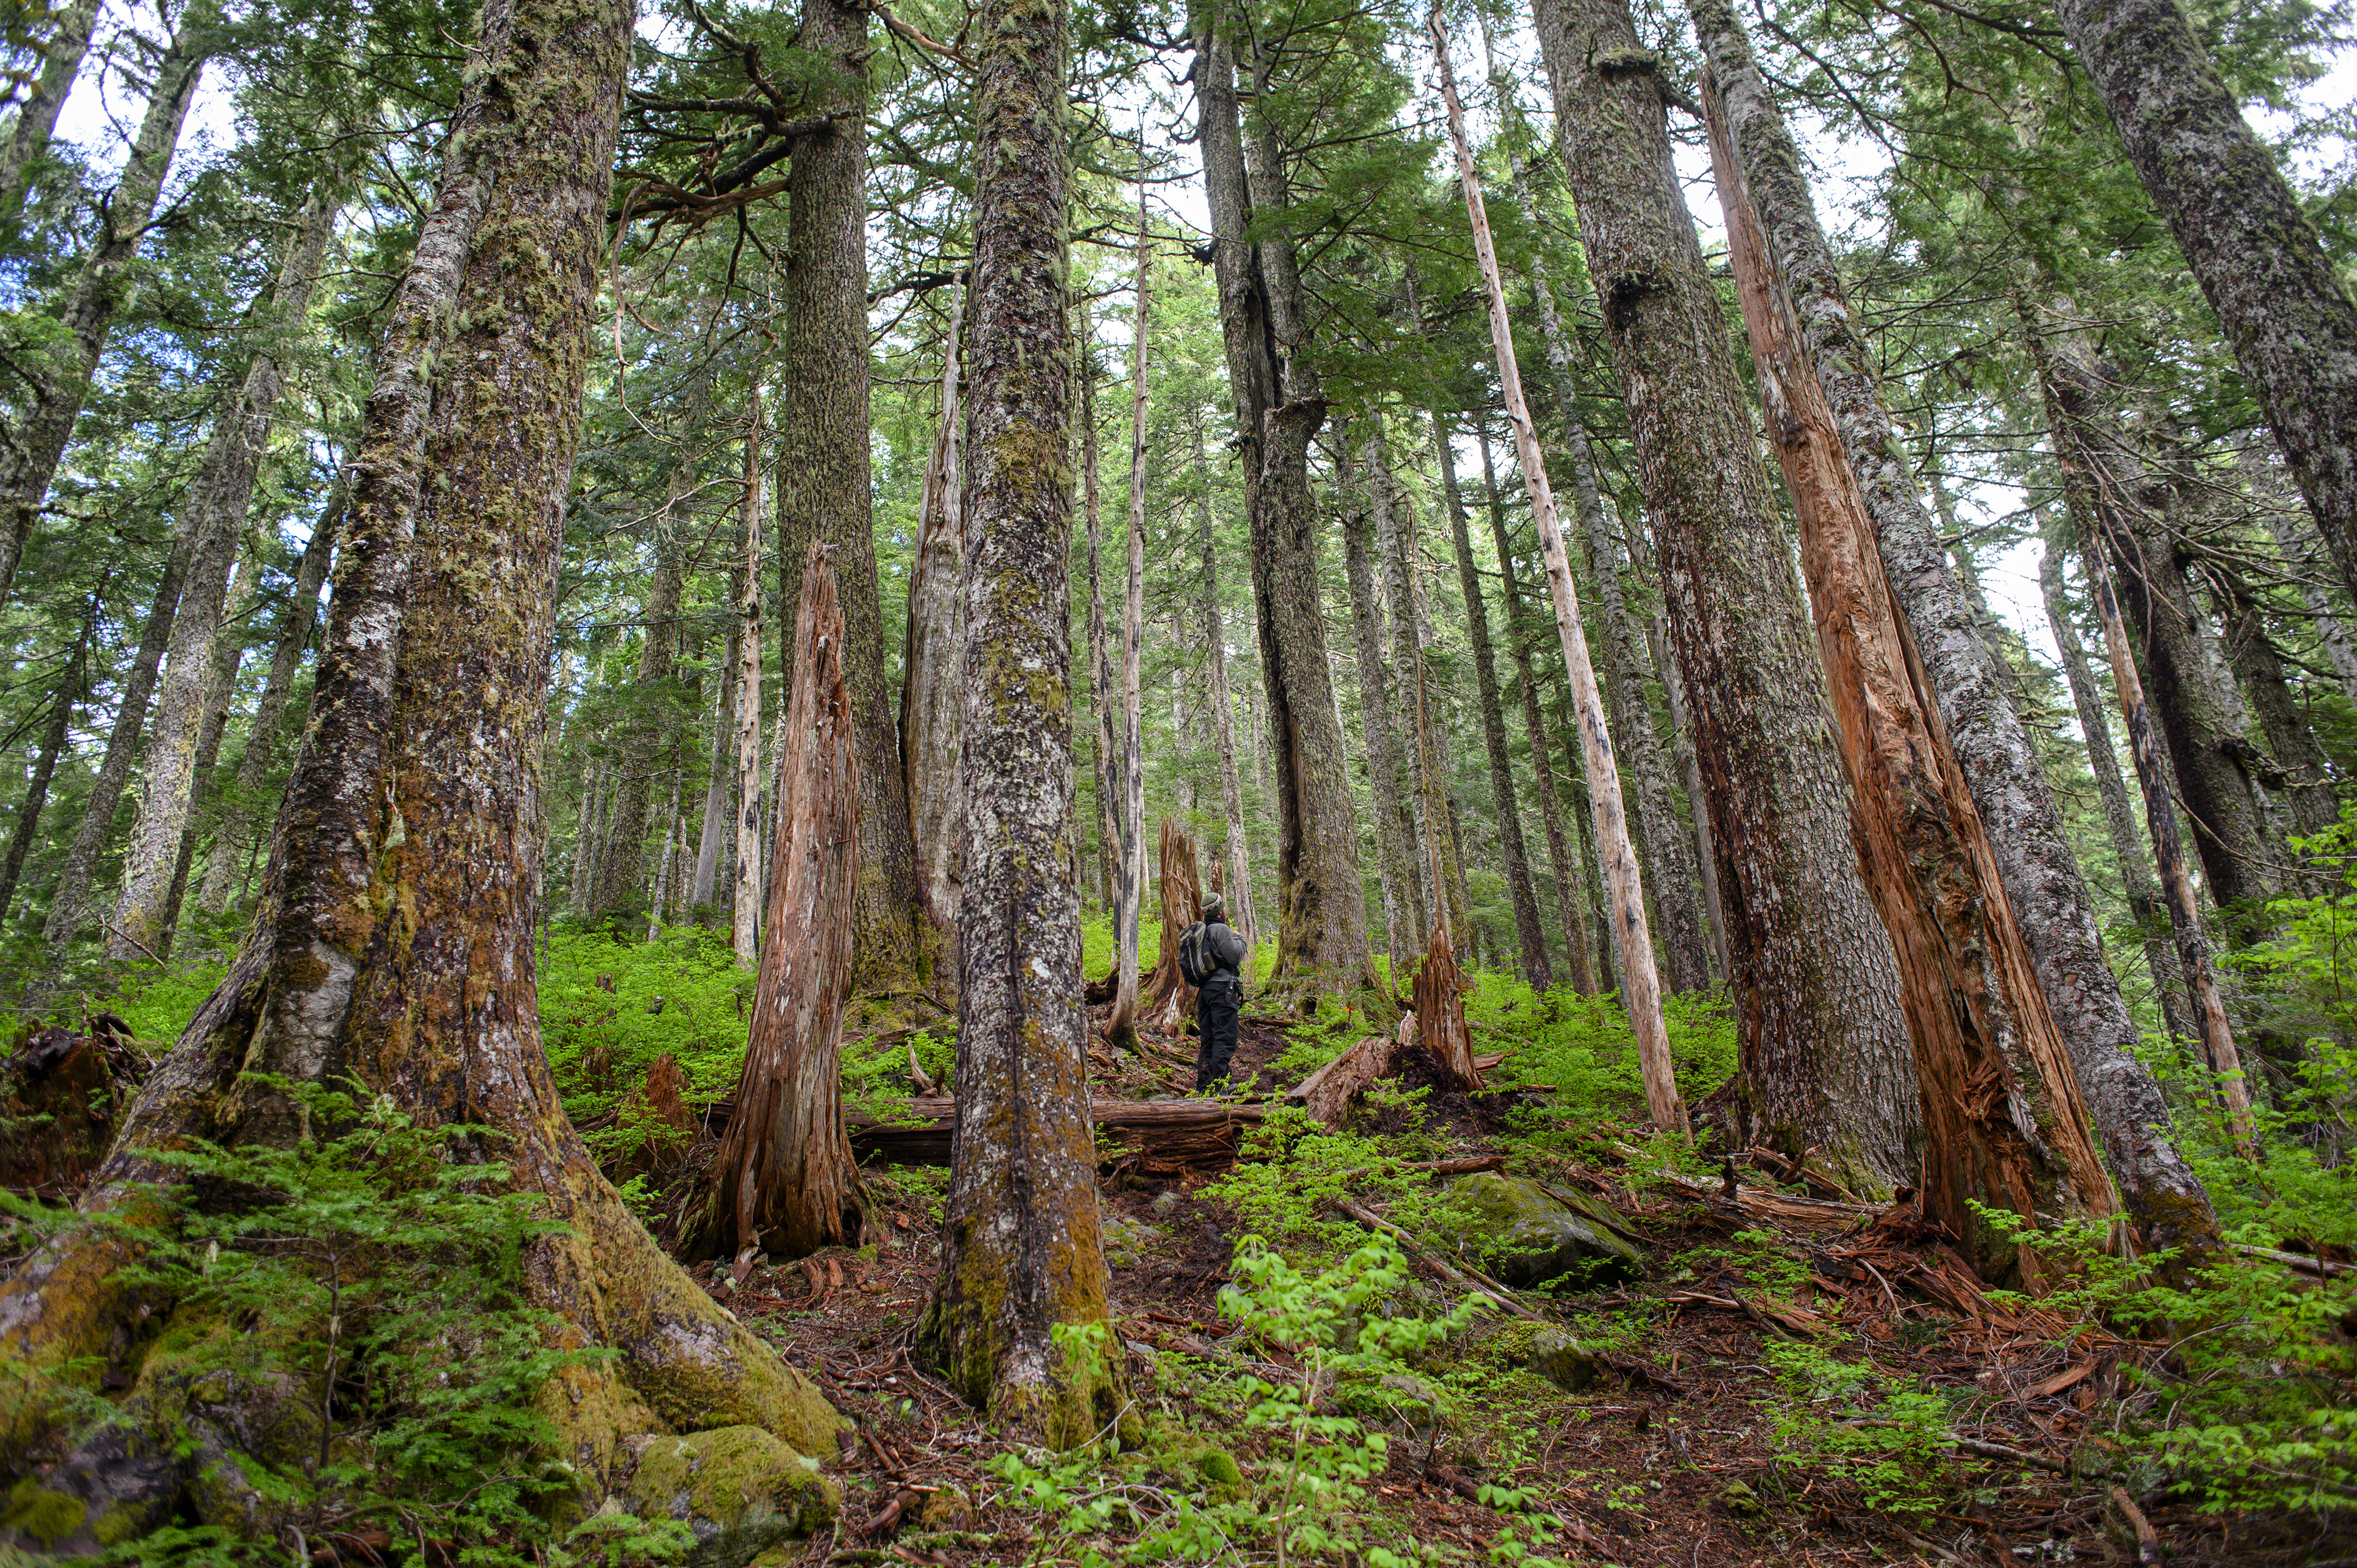 First Nations on Vancouver Island and the Lower Mainland have taken differing positions on logging of old-growth forests. Some see it as an opportunity for jobs and revenue sharing; others want to halt old-growth logging in their traditional territory. (Kieran Oudshoorn/CBC)